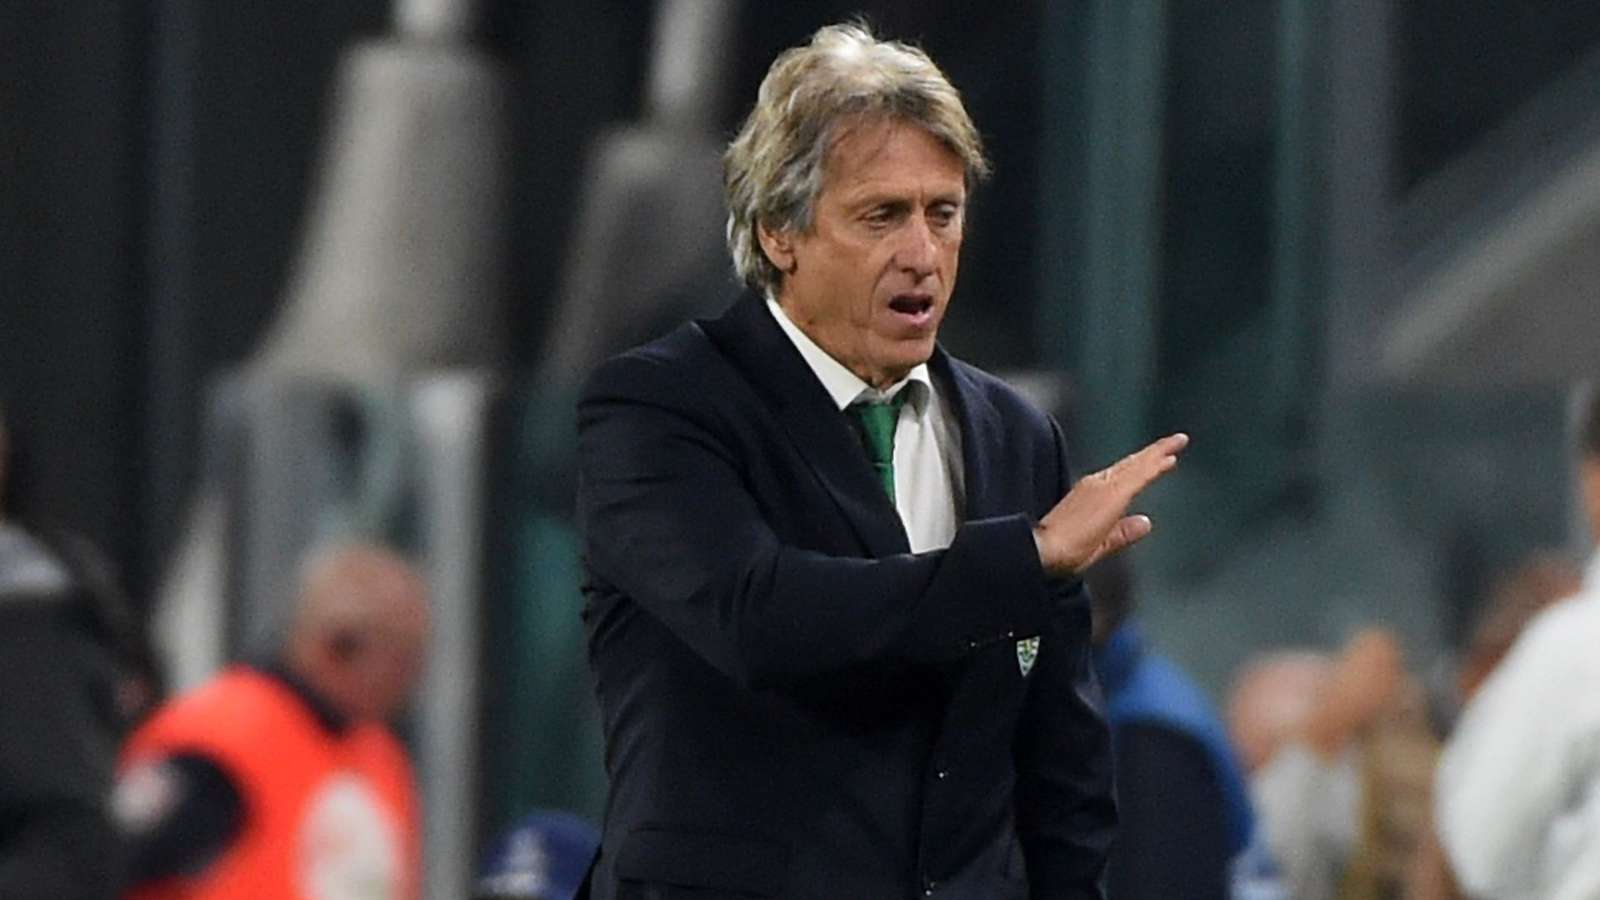 Jorge Jesus rejects the transfer of the young Flamengo player to Real Madrid